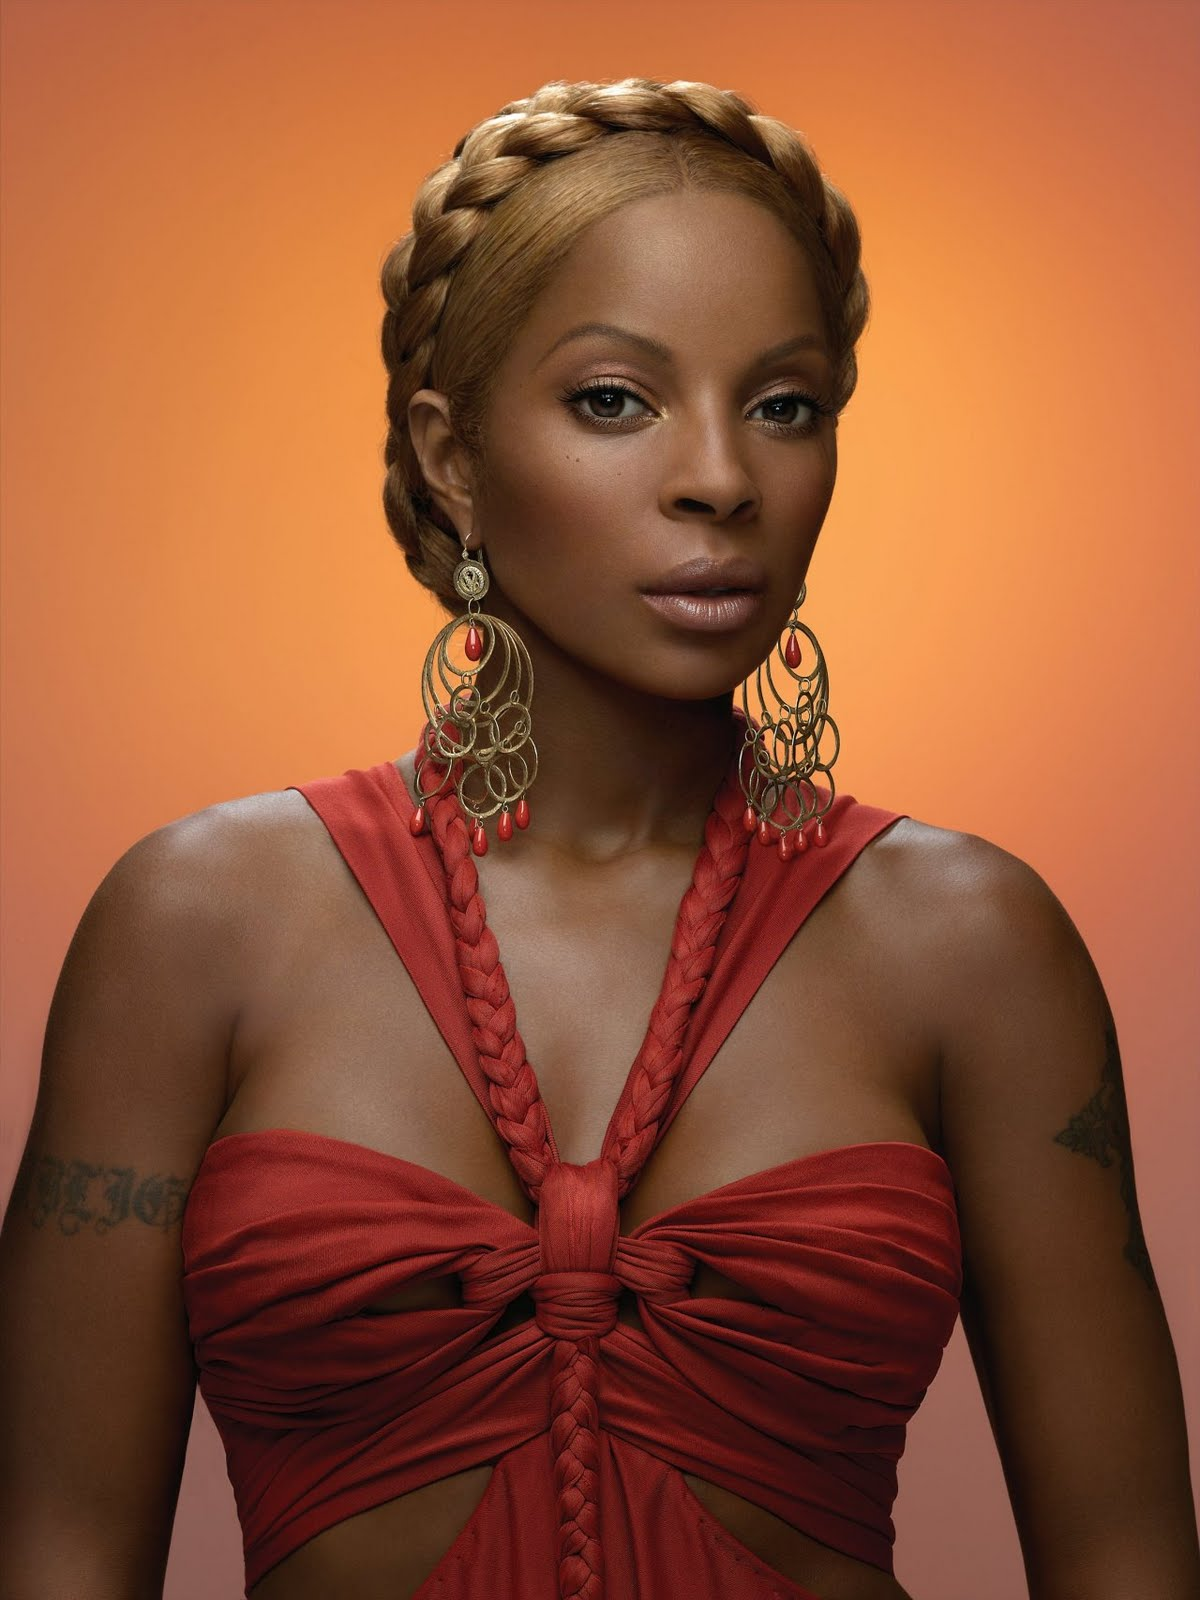 Rb Images Mary J Blige Hd Wallpaper And Background Photos 38646872